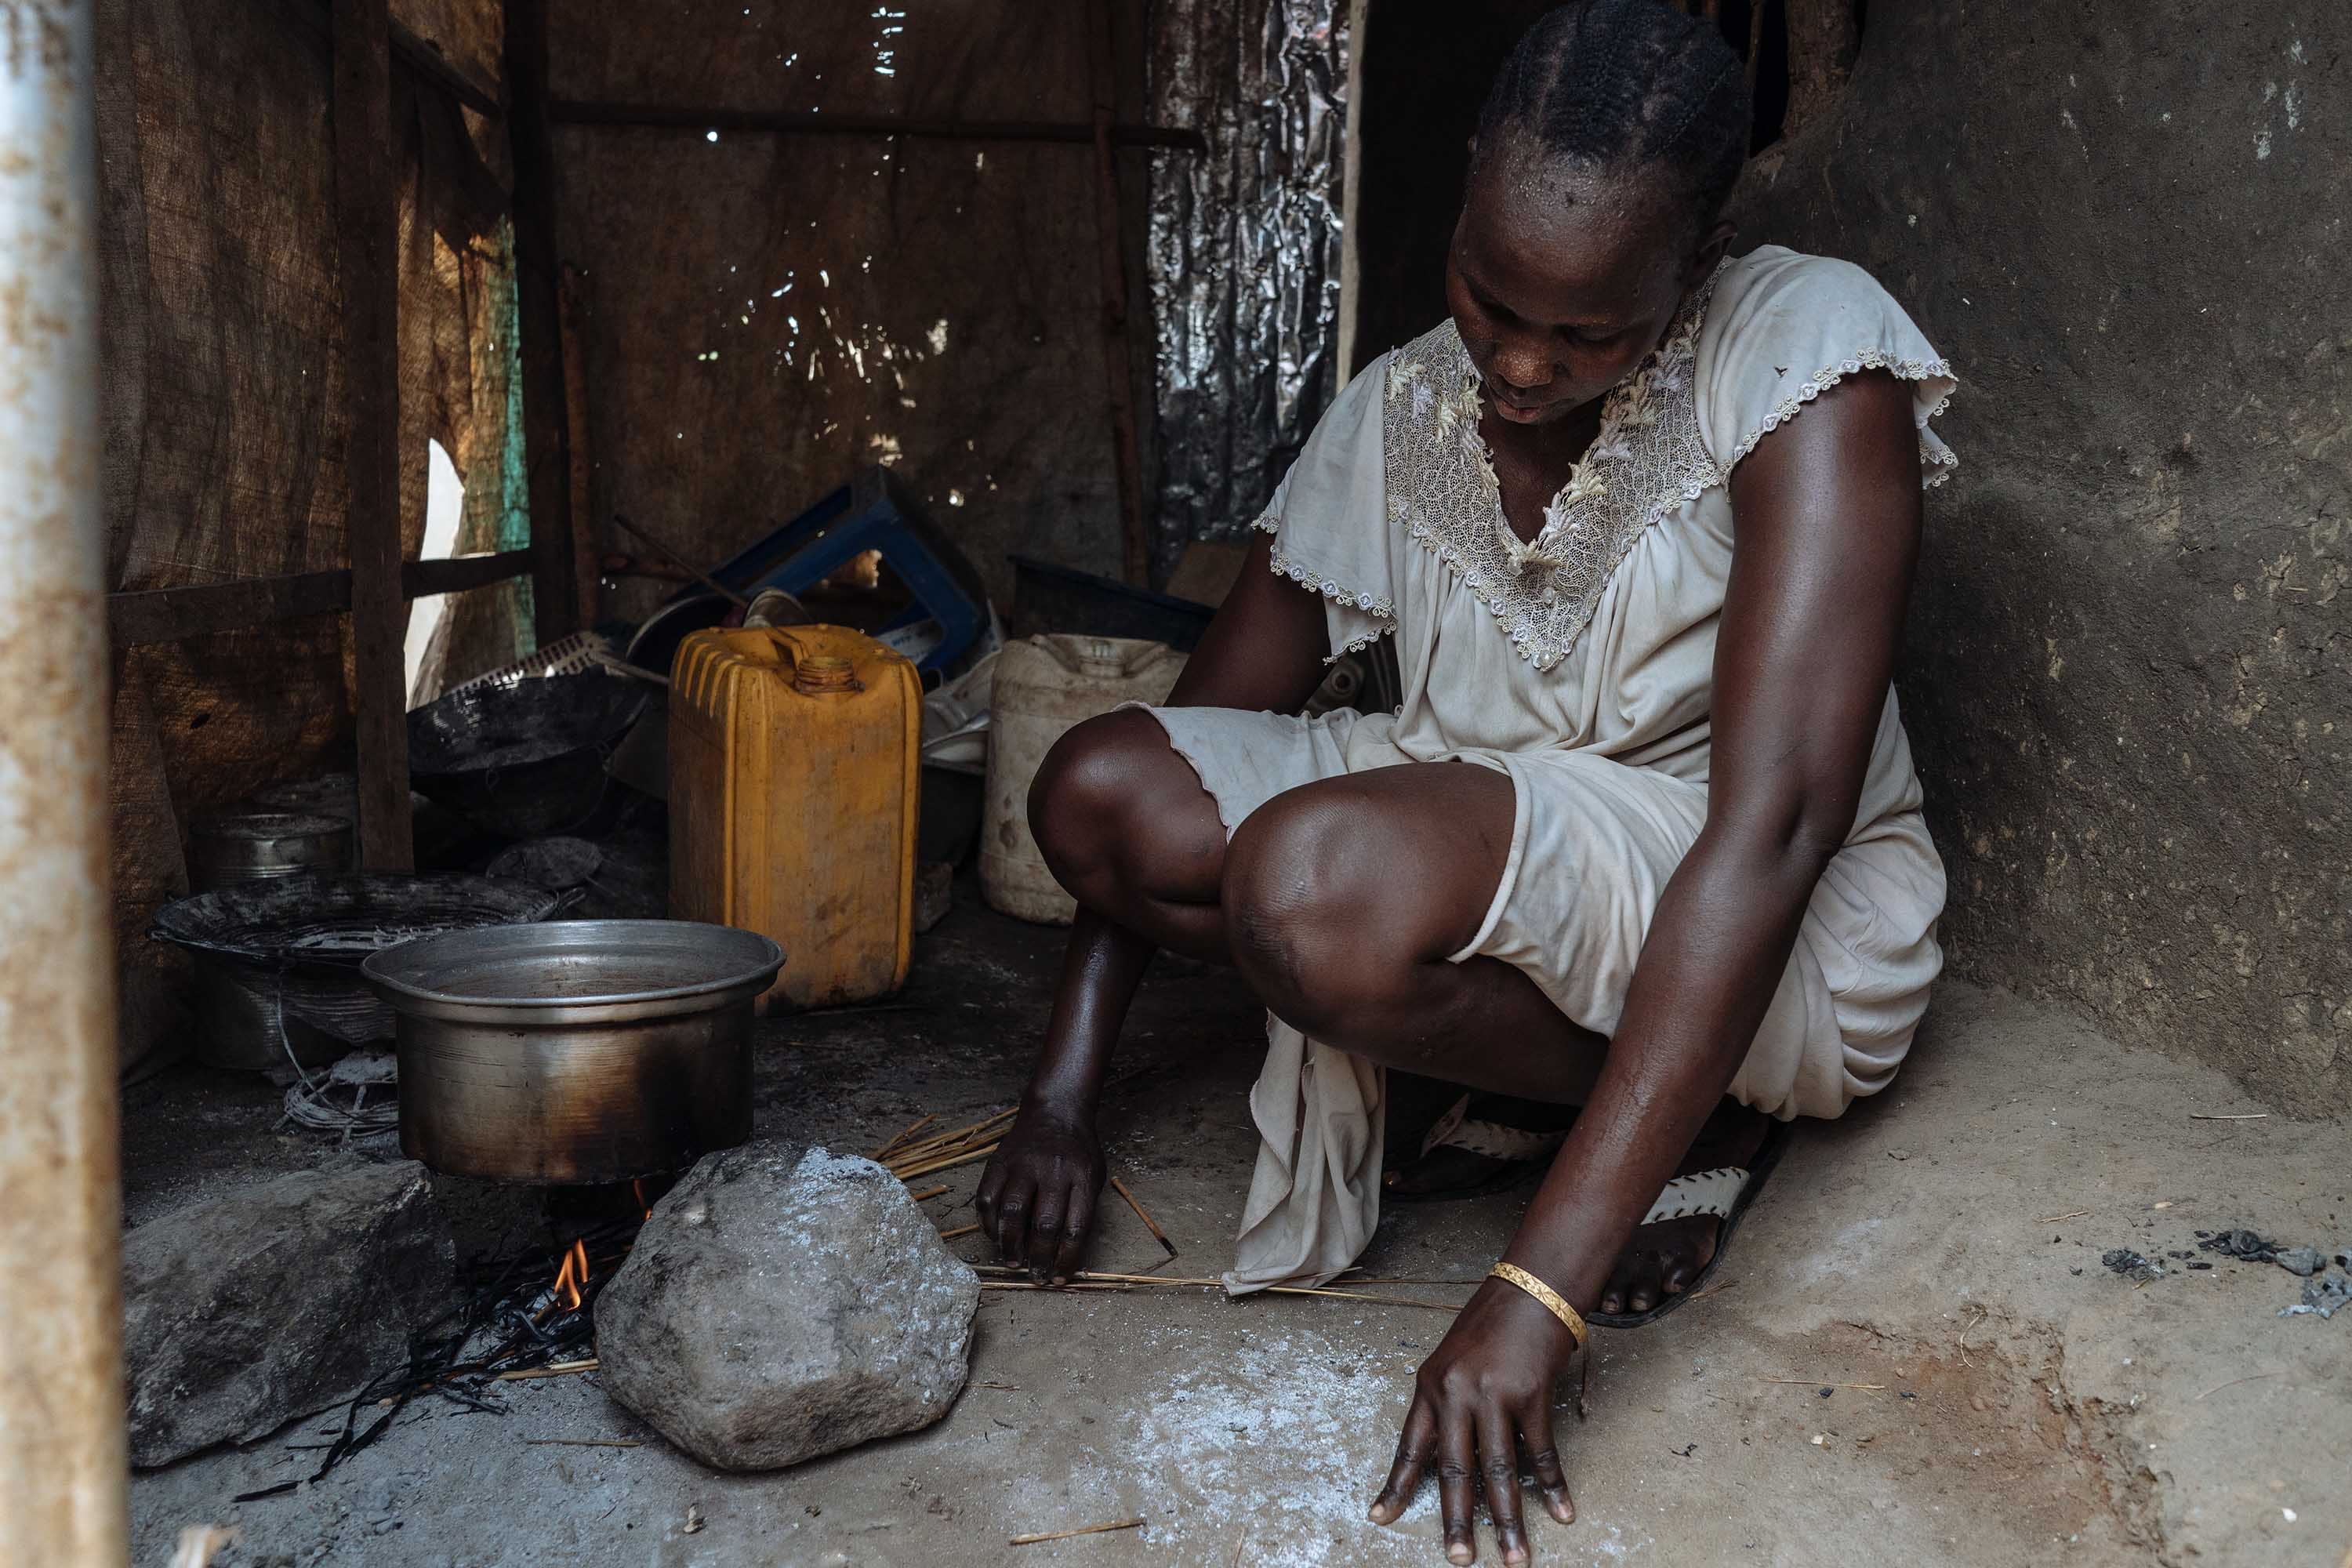 Angeline, a South Sudanese woman, photographed making a fire in her kitchen.